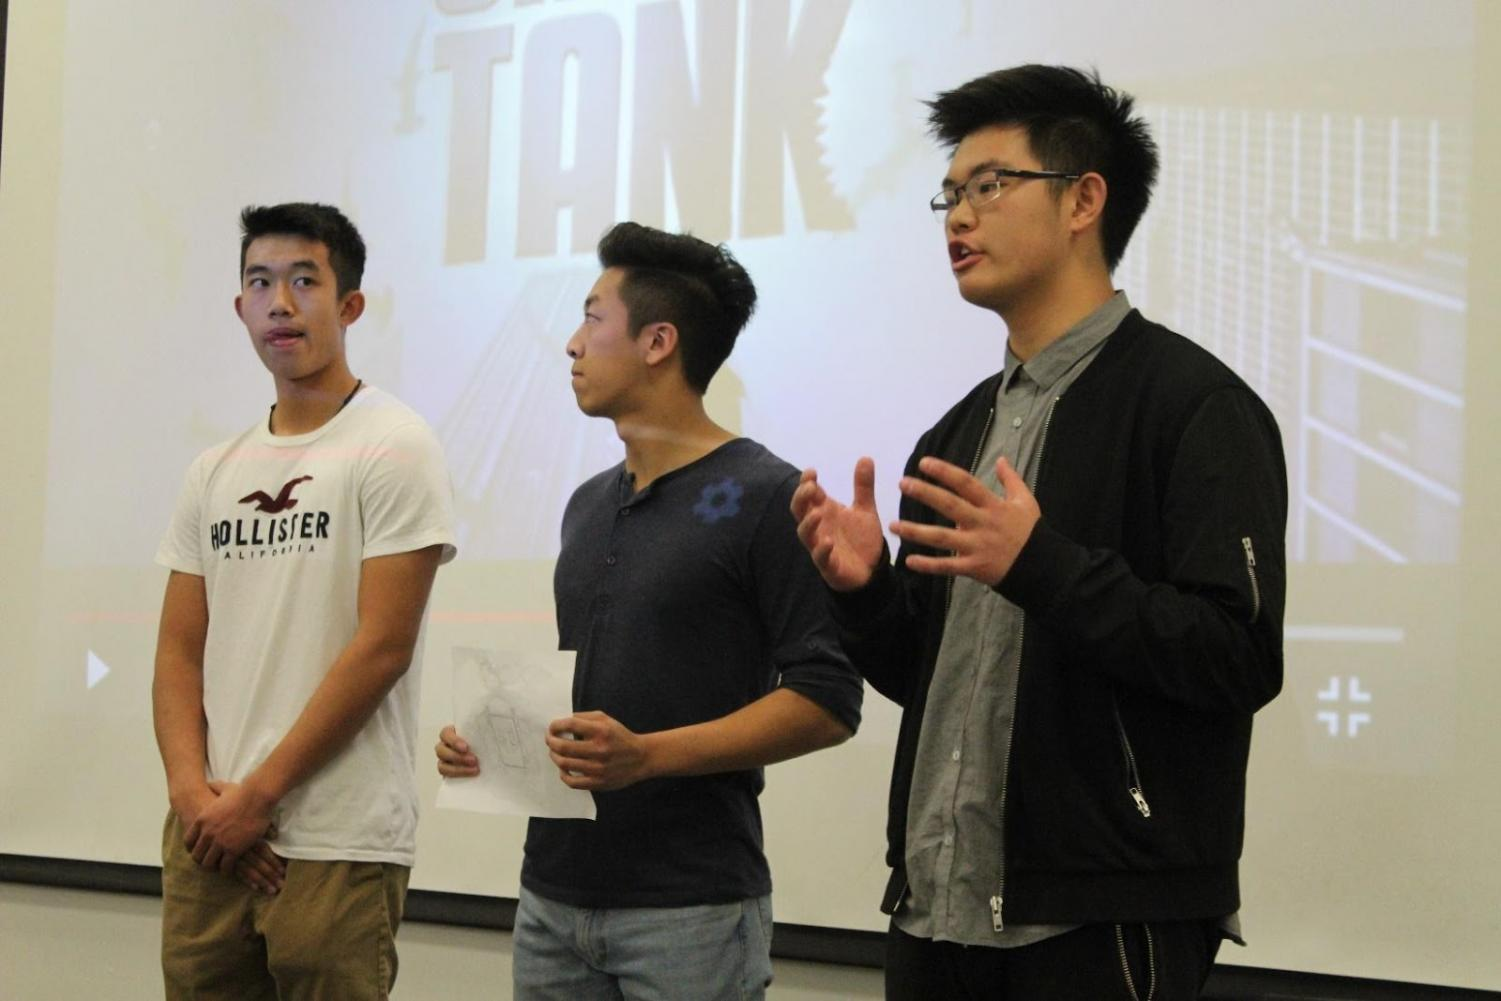 From left to right, seniors Ryan Trinh, Kilik Ov and Jacky Chen present their product, called Click, to a panel of judges.